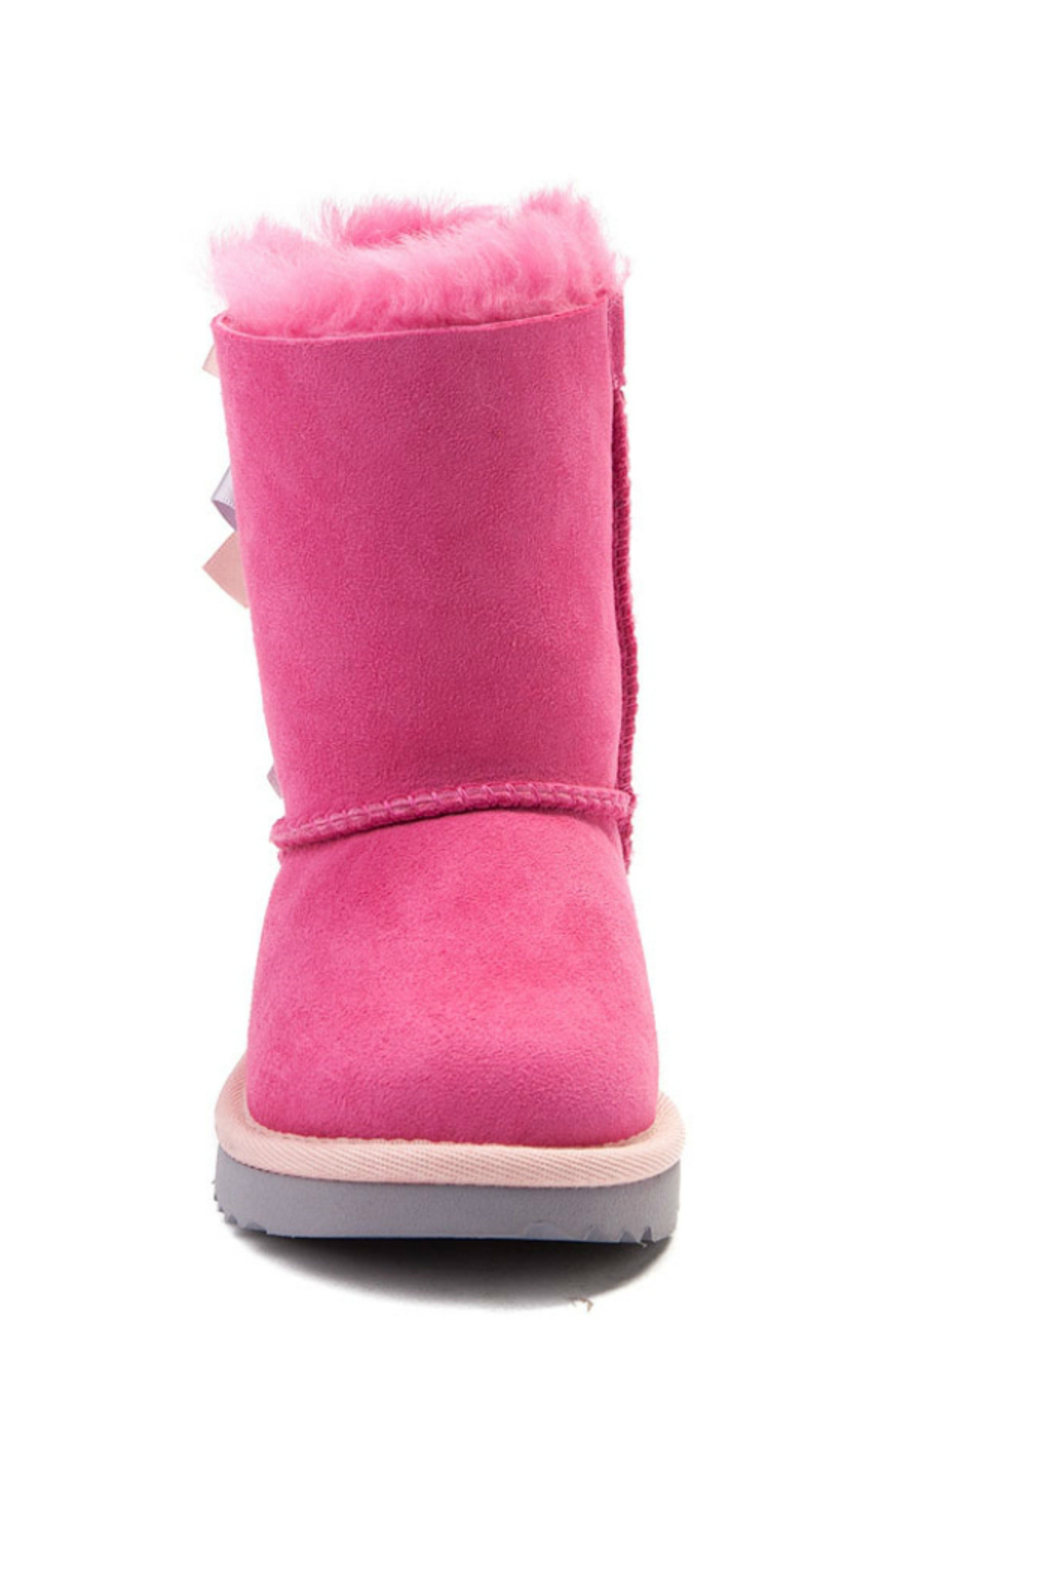 Ugg TODDLER BAILEY BOW - Front Full Image